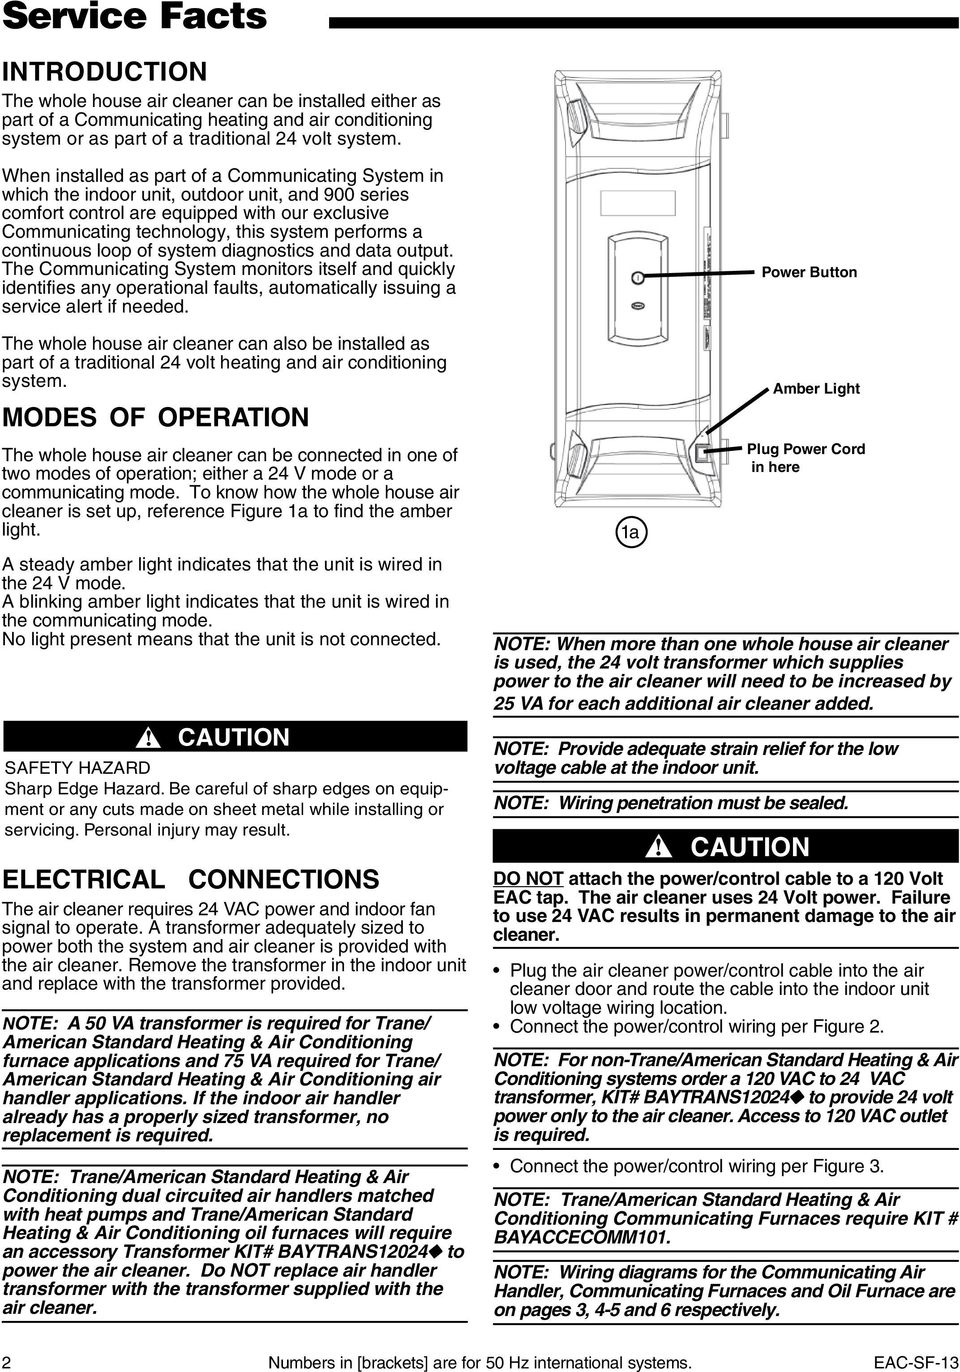 Downflow Furnace Models Fd14dclfr000d Fd17dclfr000d Fd21dclfr000d Low Voltage Wiring Standards A Continuous Loop Of System Diagnostics And Data Output The Communicating Monitors Itself 3 2 Diagram